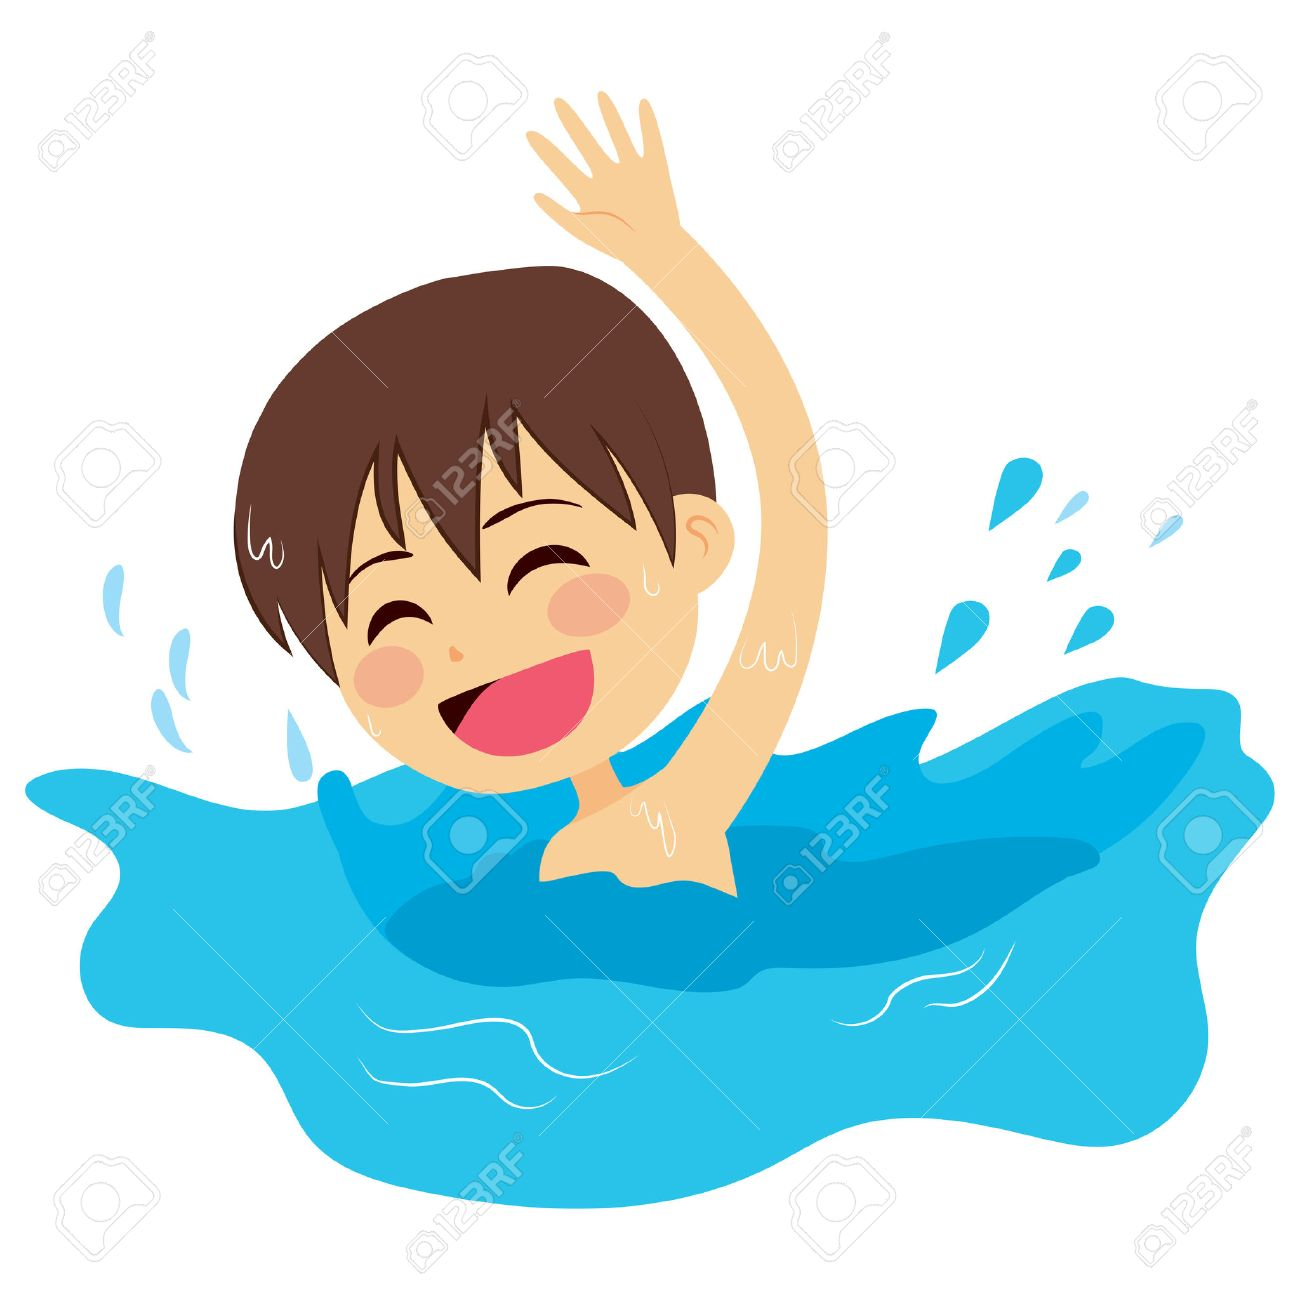 Cheerful and active little kid swimming happy on water.